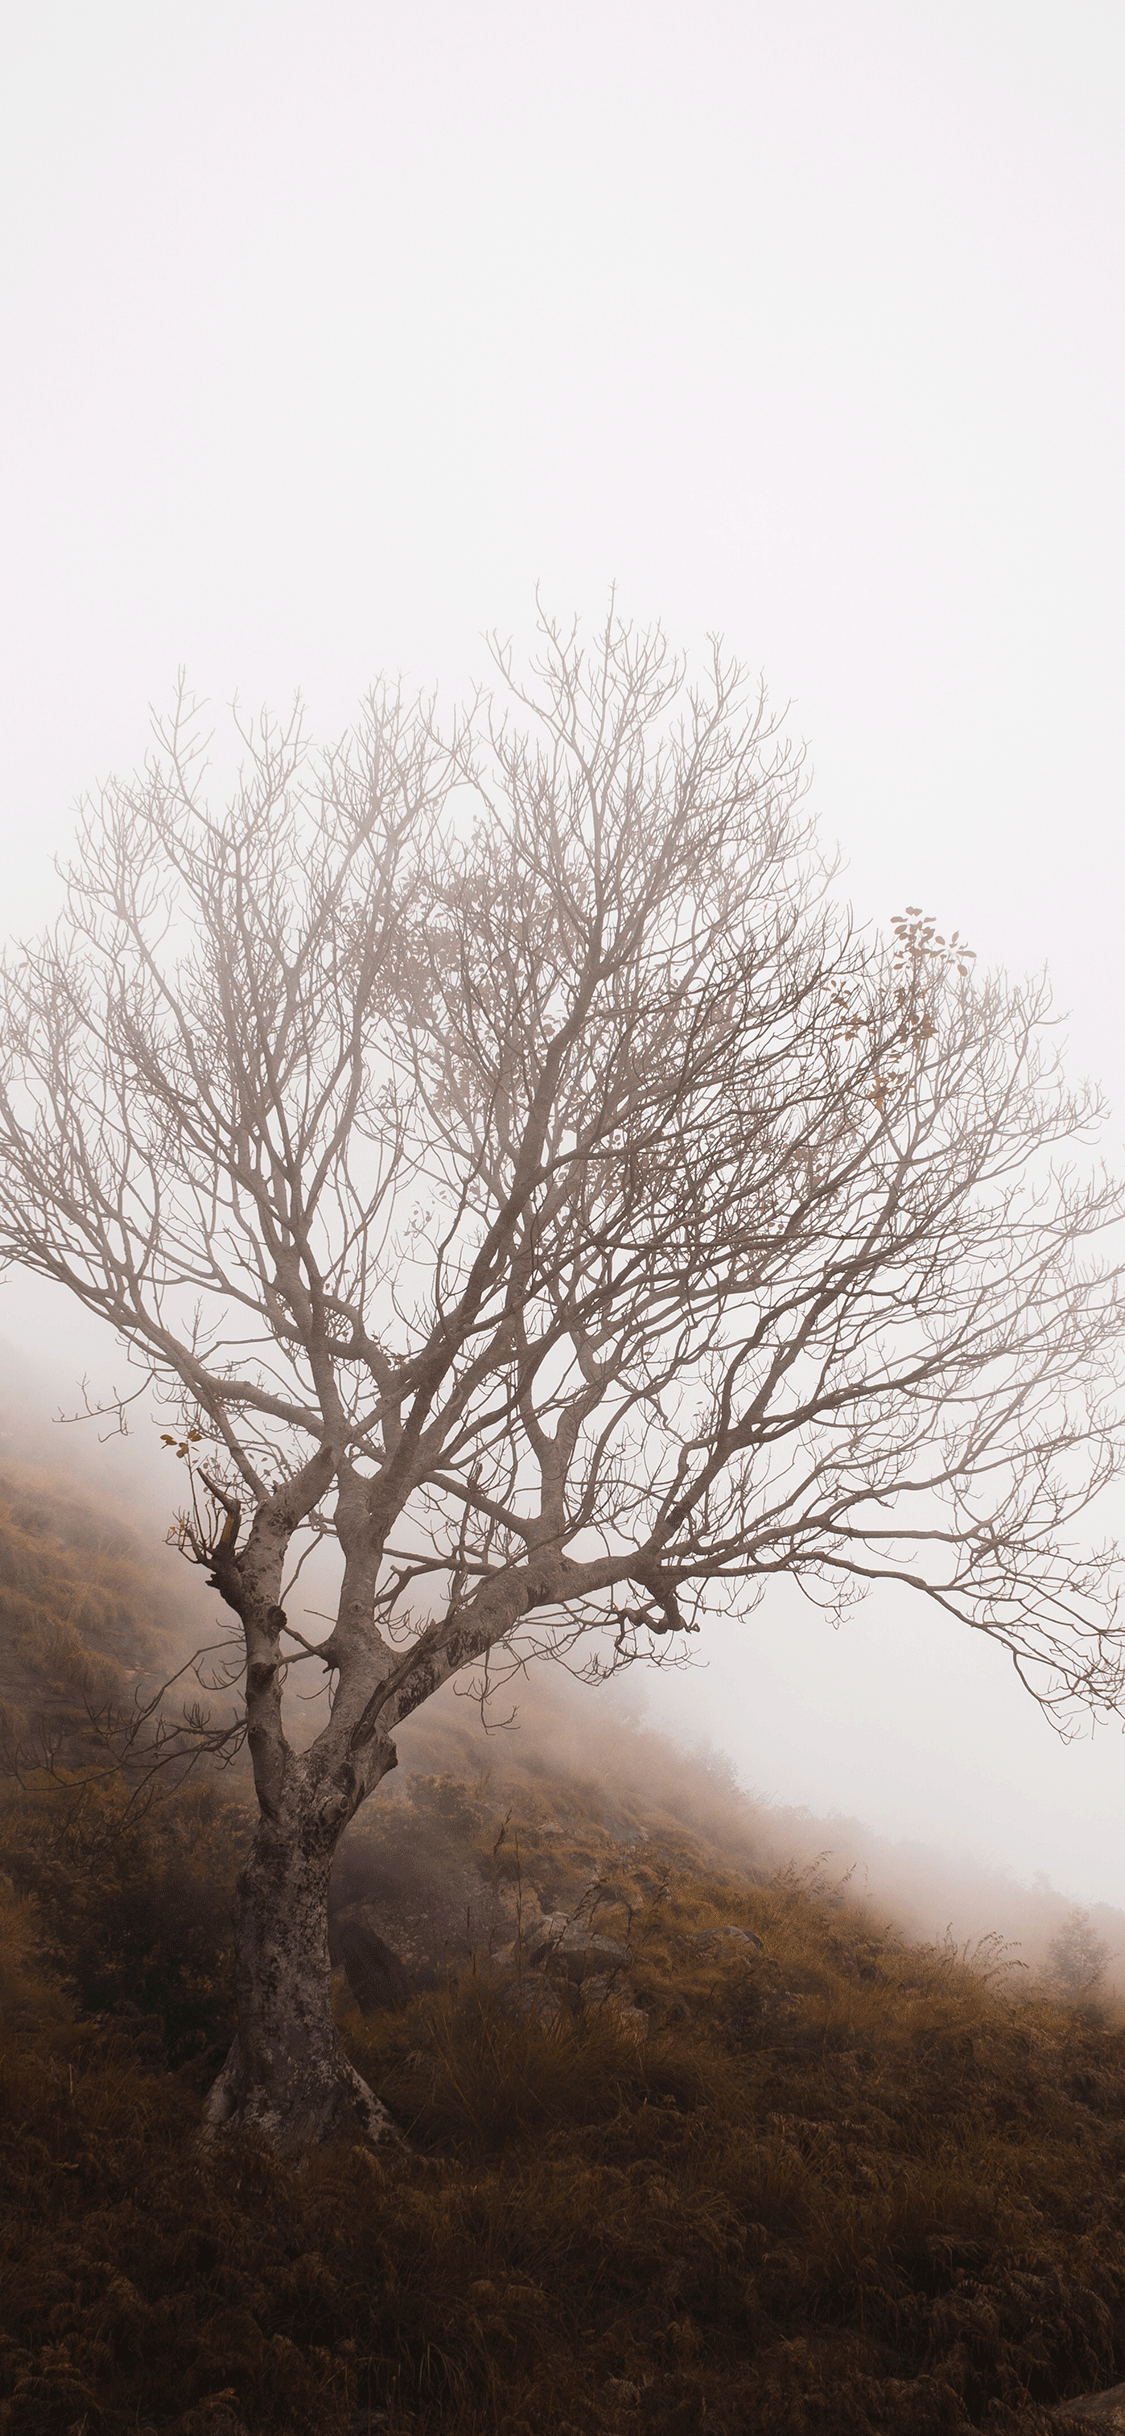 iPhone wallpaper fog tree india Fonds d'écran iPhone du 16/08/2018